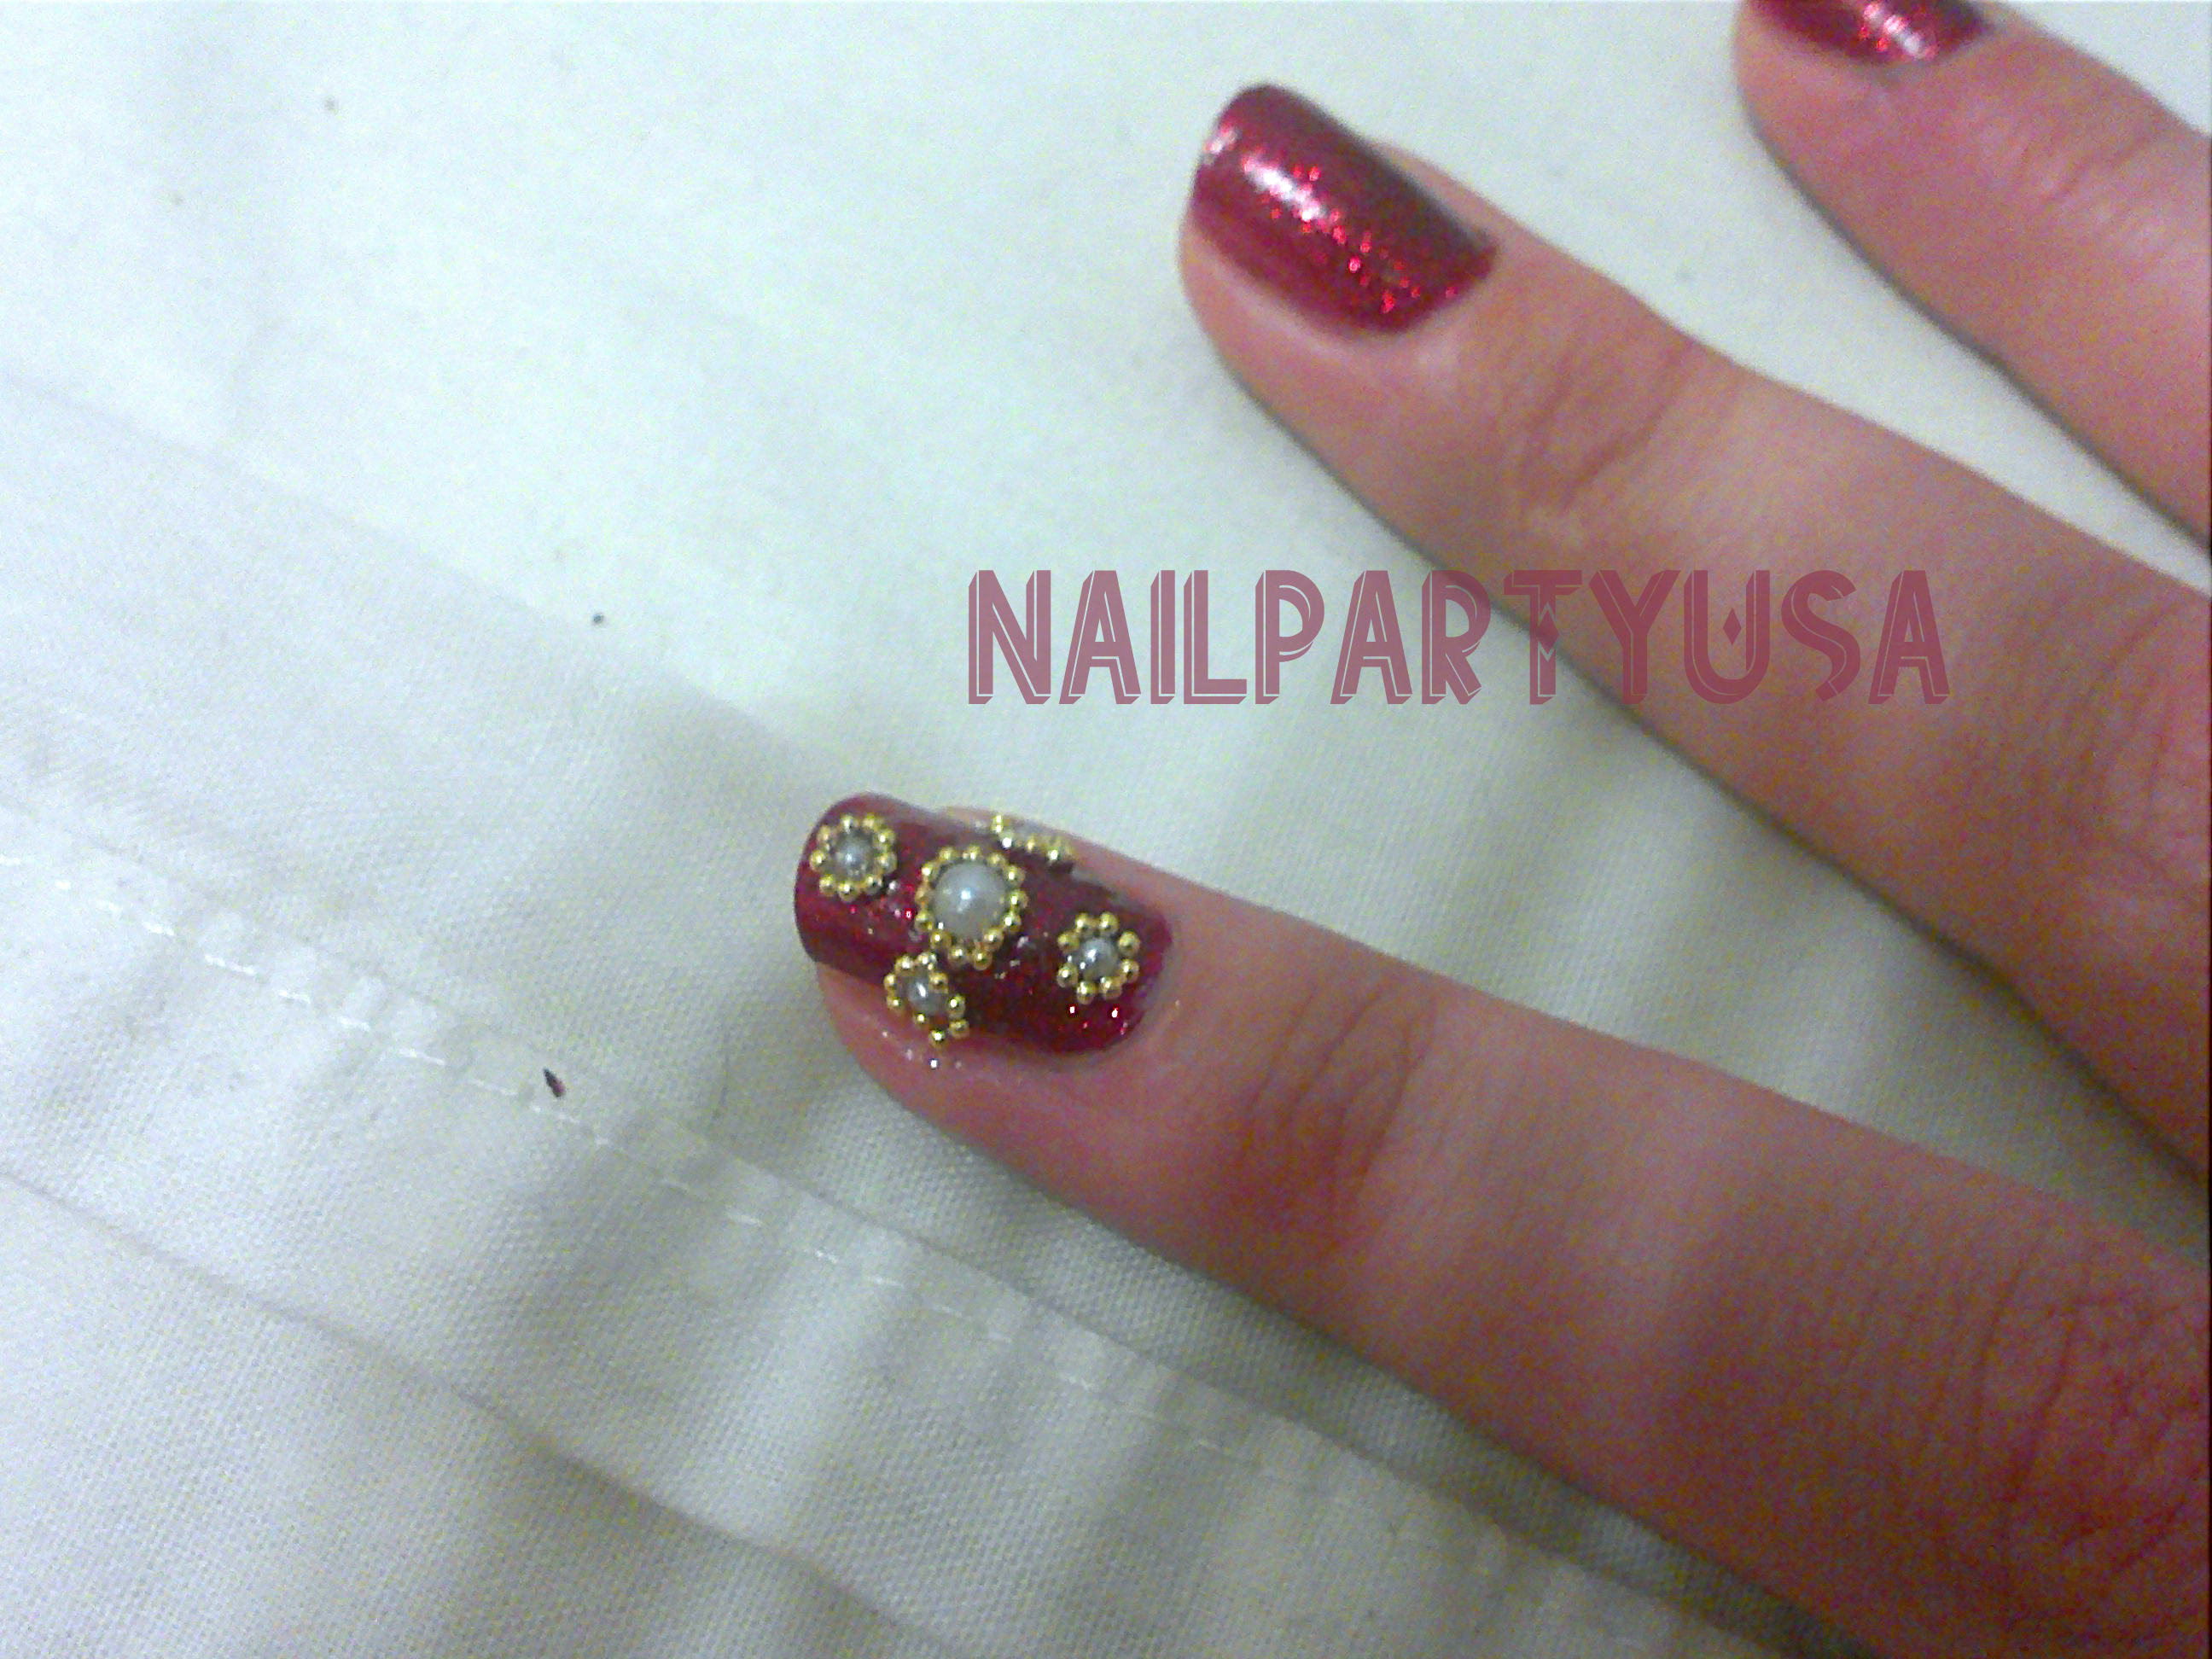 All Posts | NAIL PARTY USA | Page 2